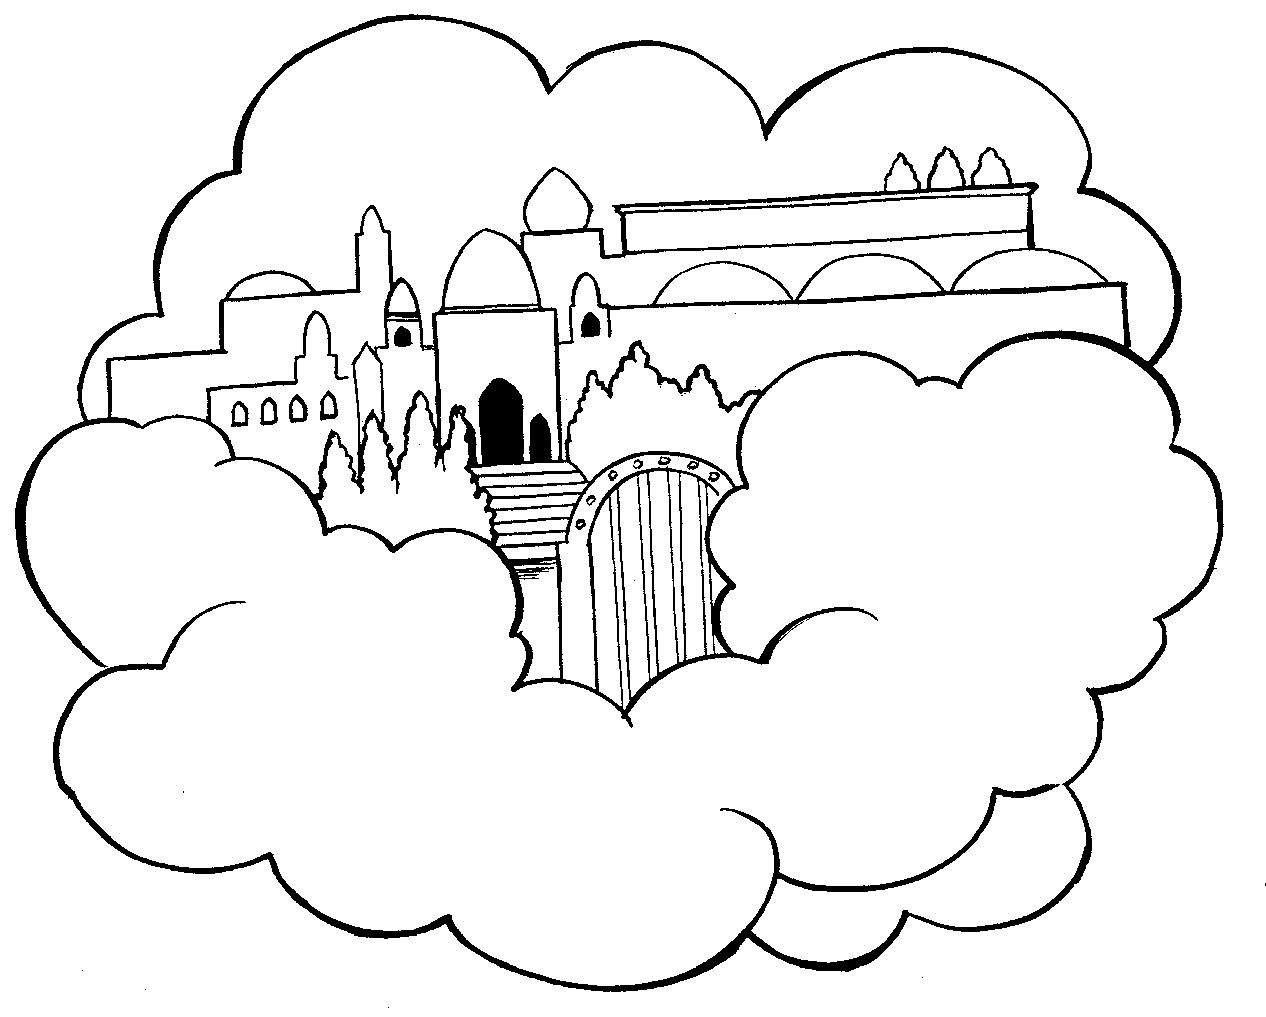 heaven coloring pages Heaven Coloring Pages | heaven Colouring Pages (page 2) | Bible  heaven coloring pages